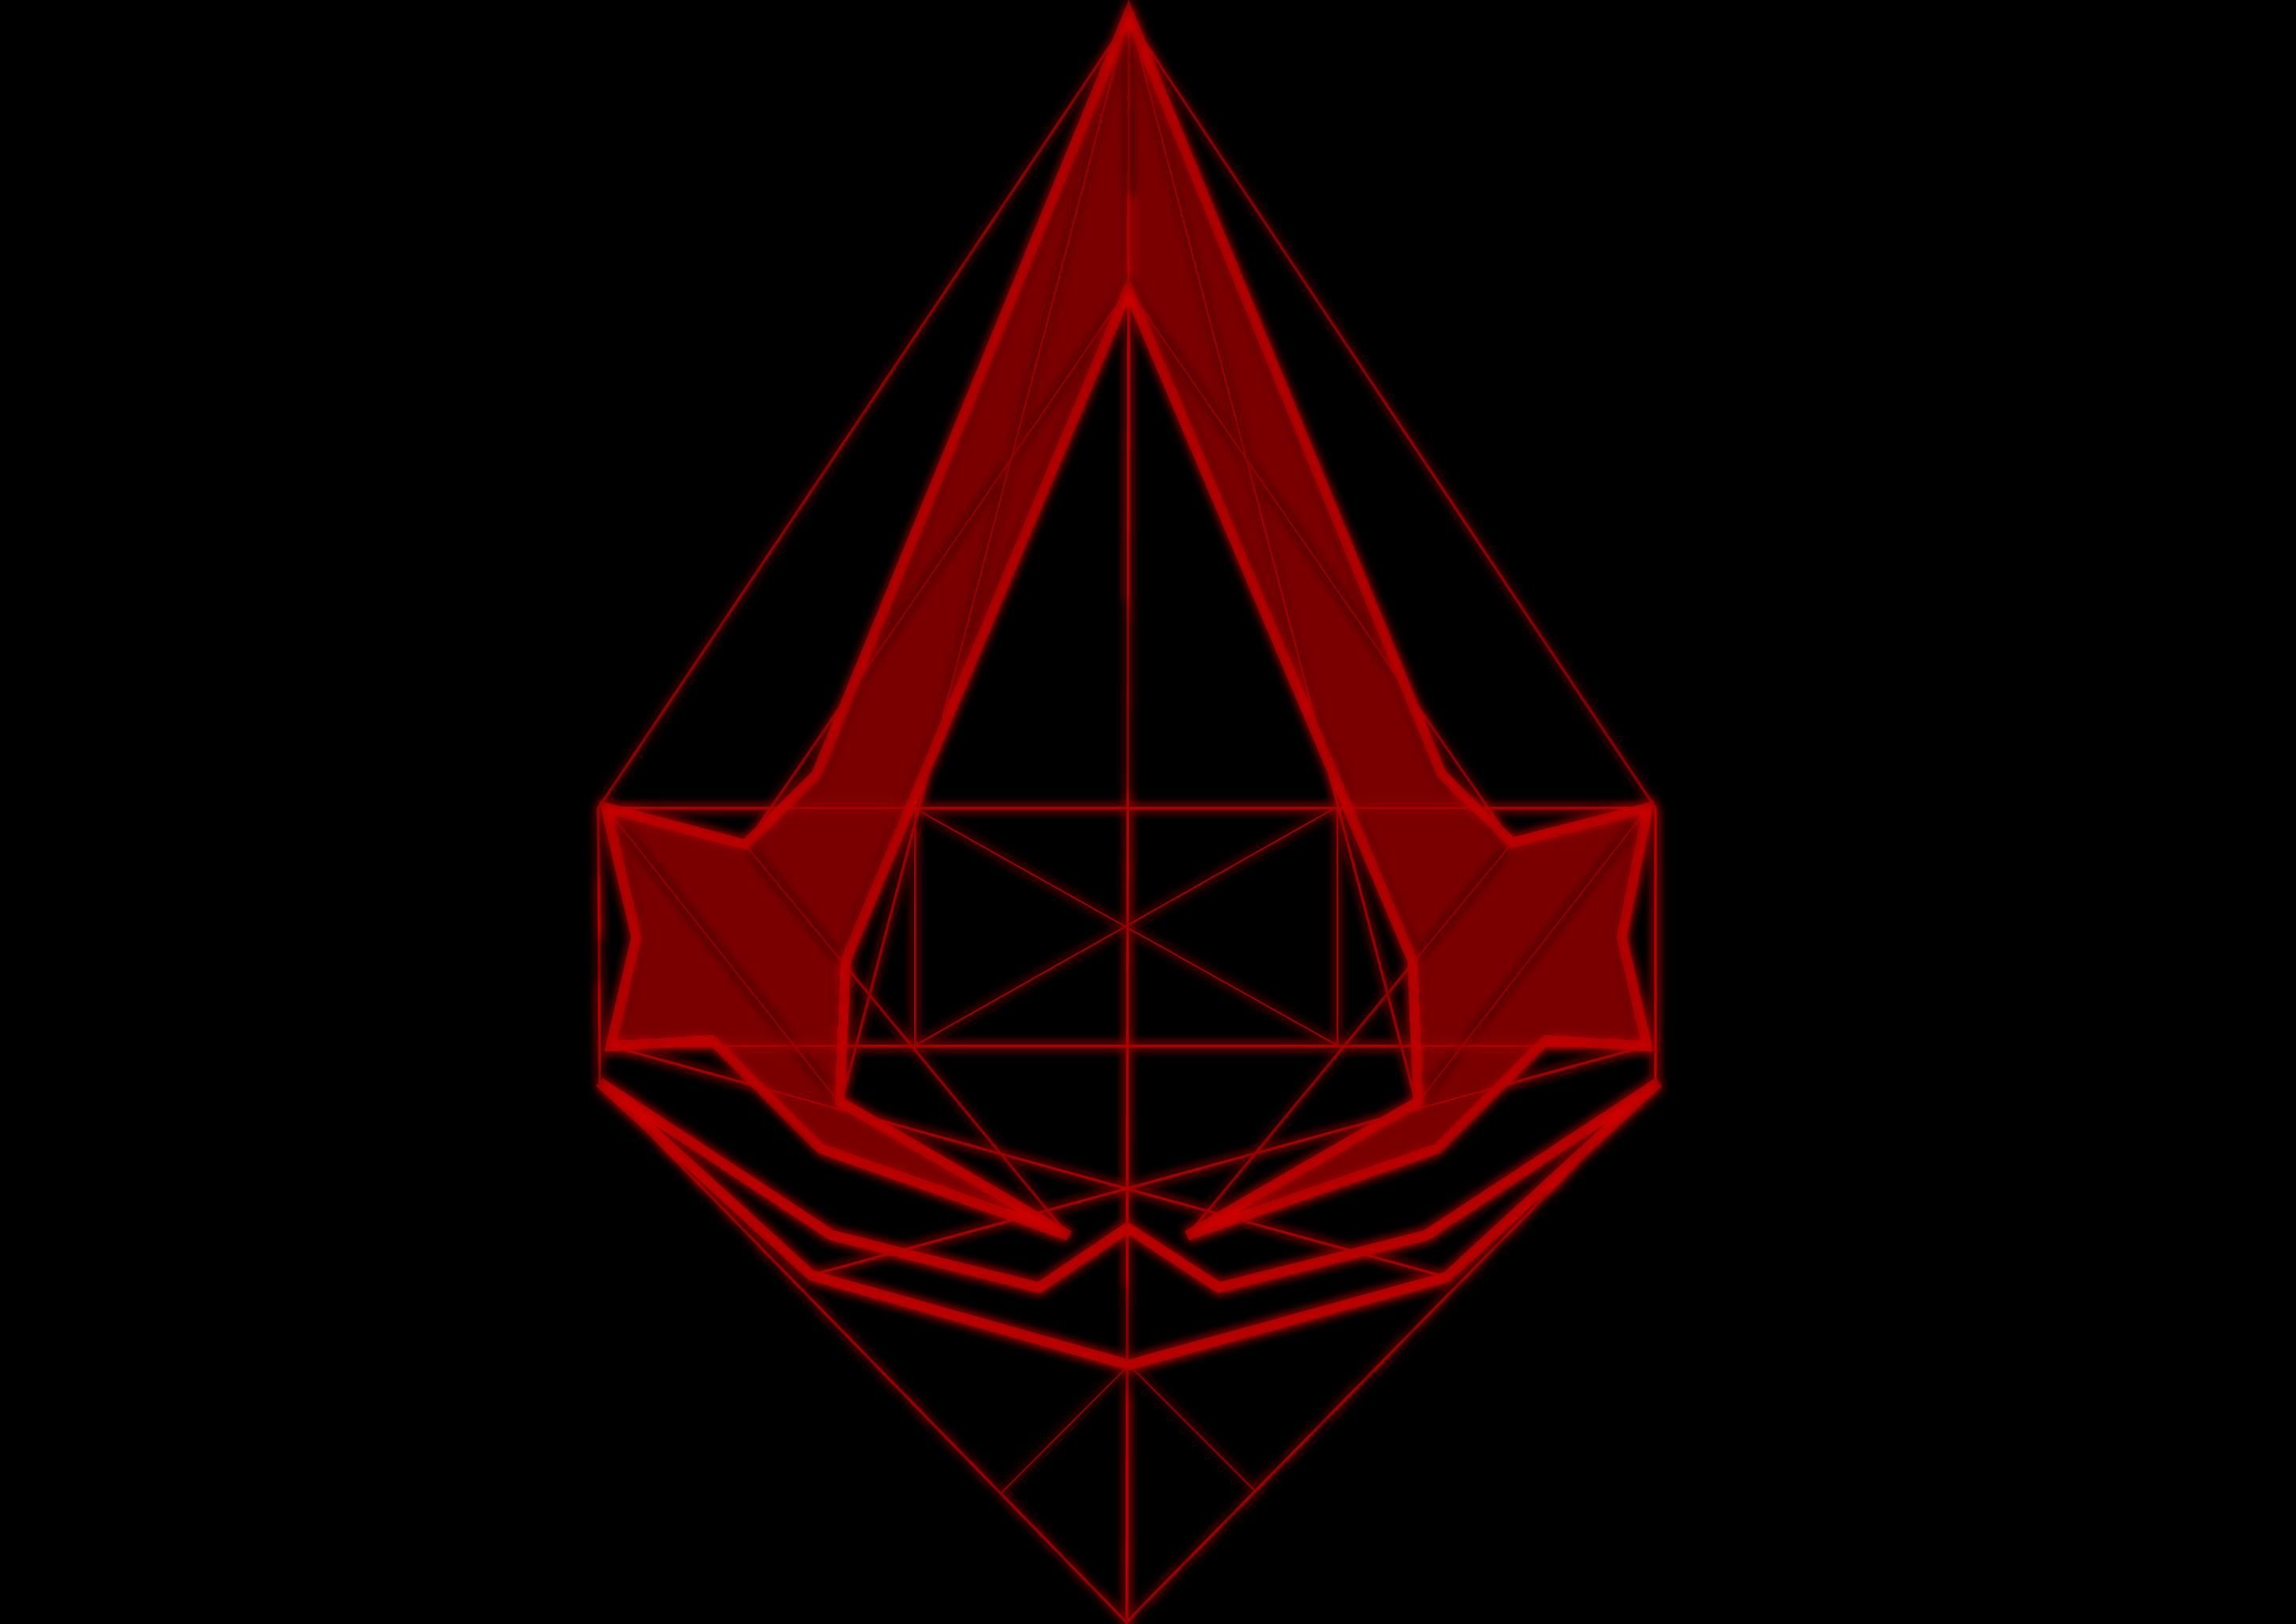 assassins creed assassin s creed logo by f816 assassin s creed logo ...: www.2tupian.com/pic/pbtpl7ni.html